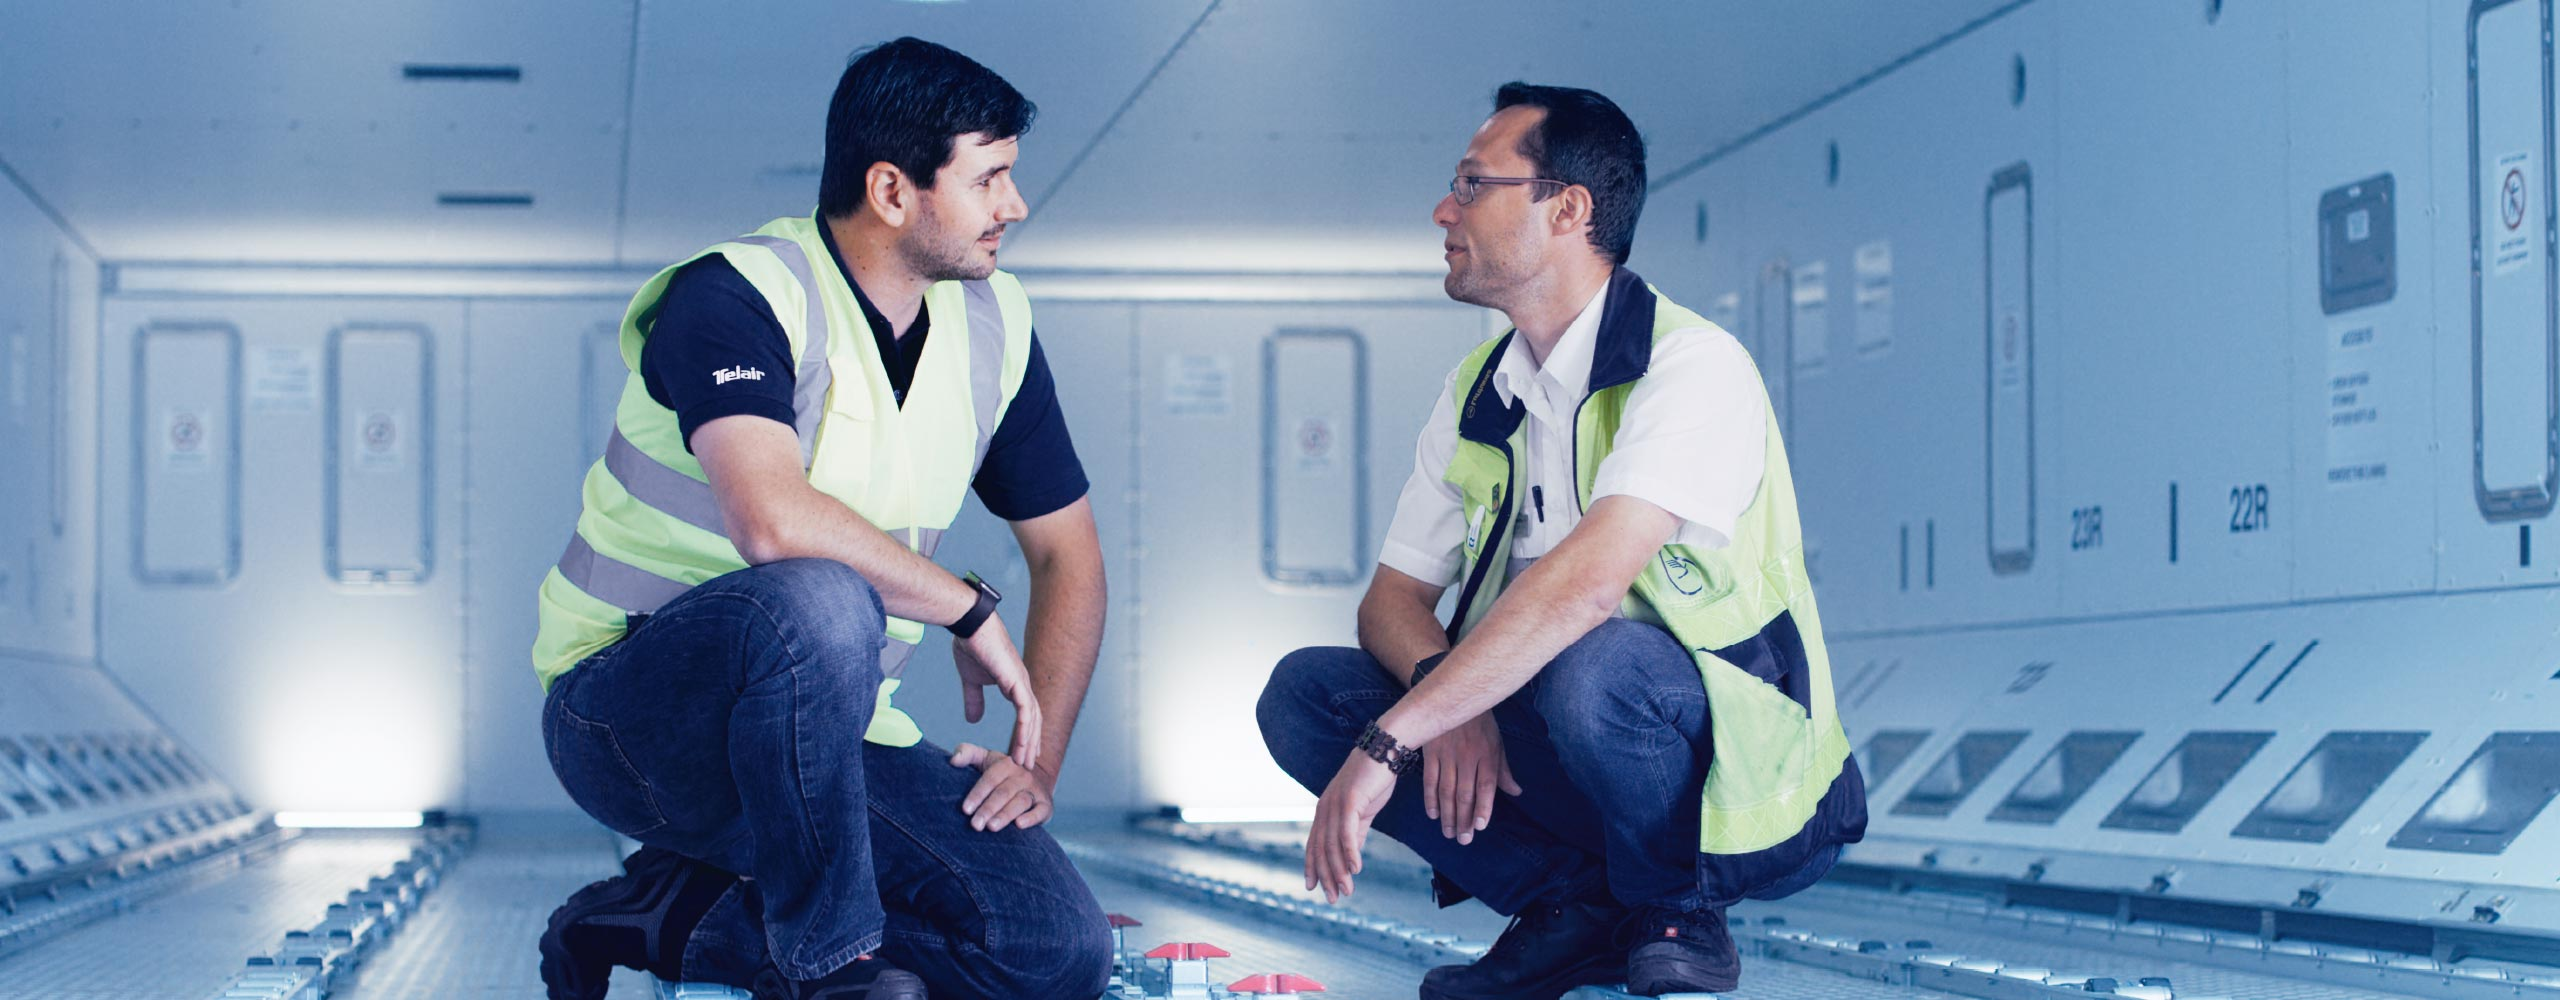 Employees working in the Technical Service Support | TELAIR